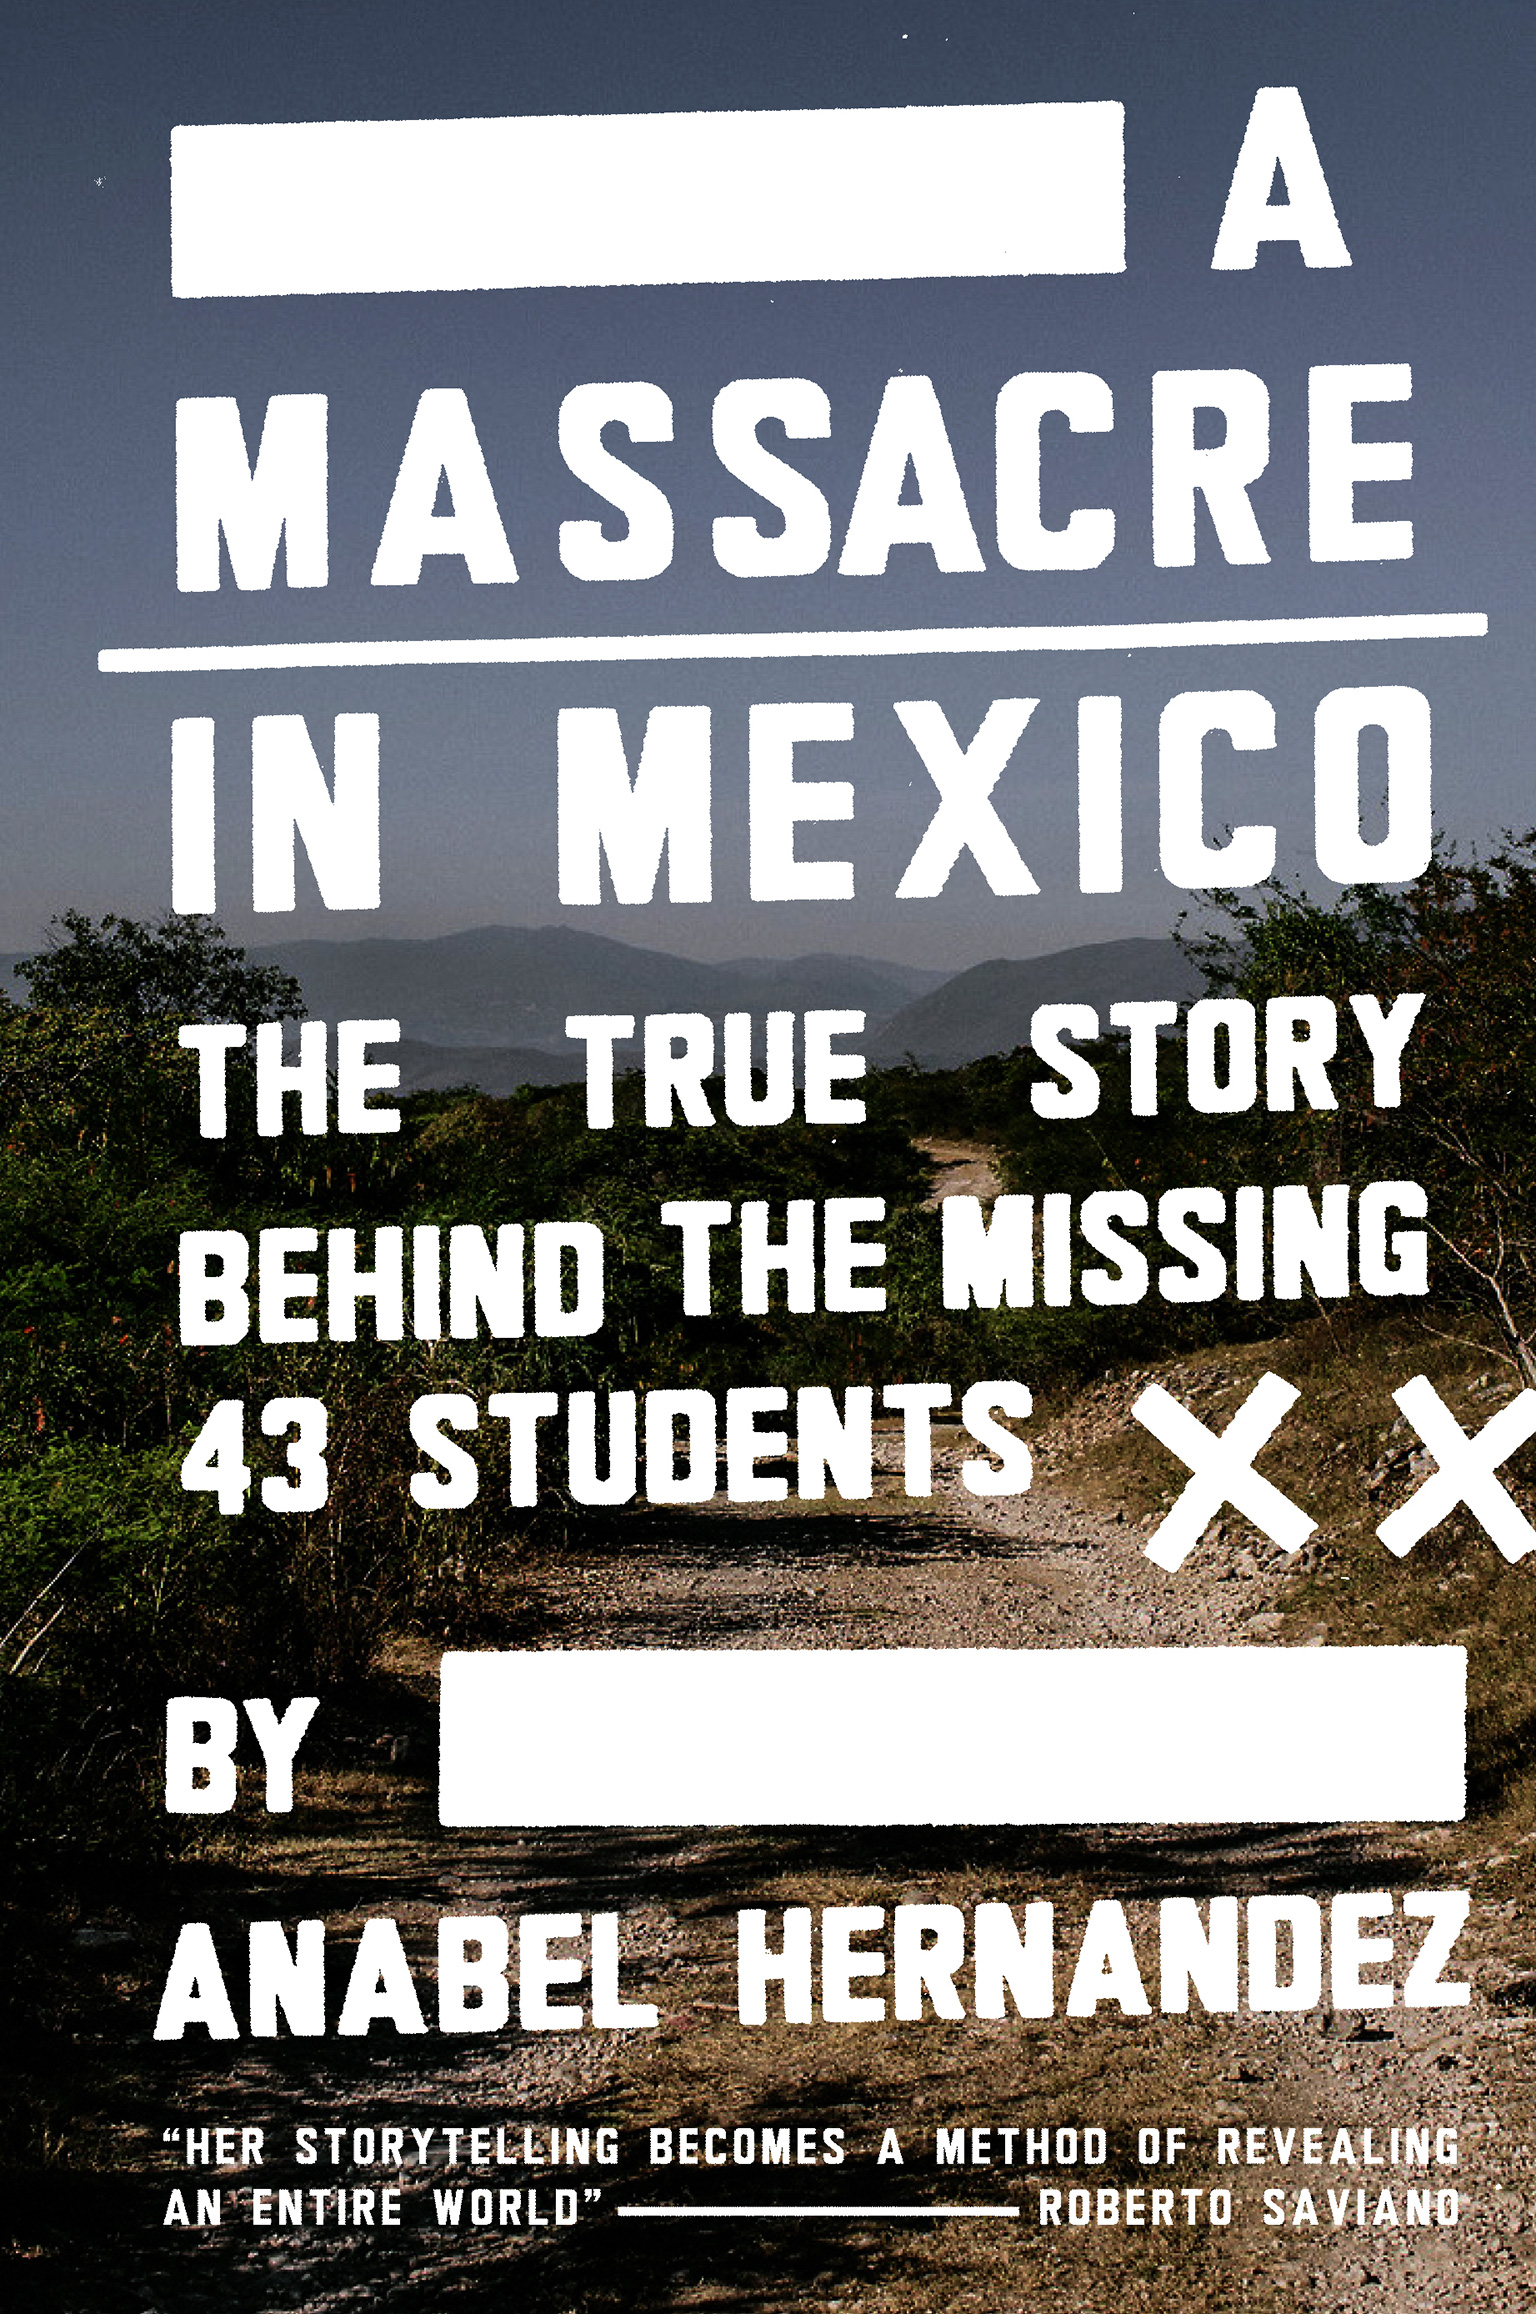 Hernandez---massacre-in-mexico